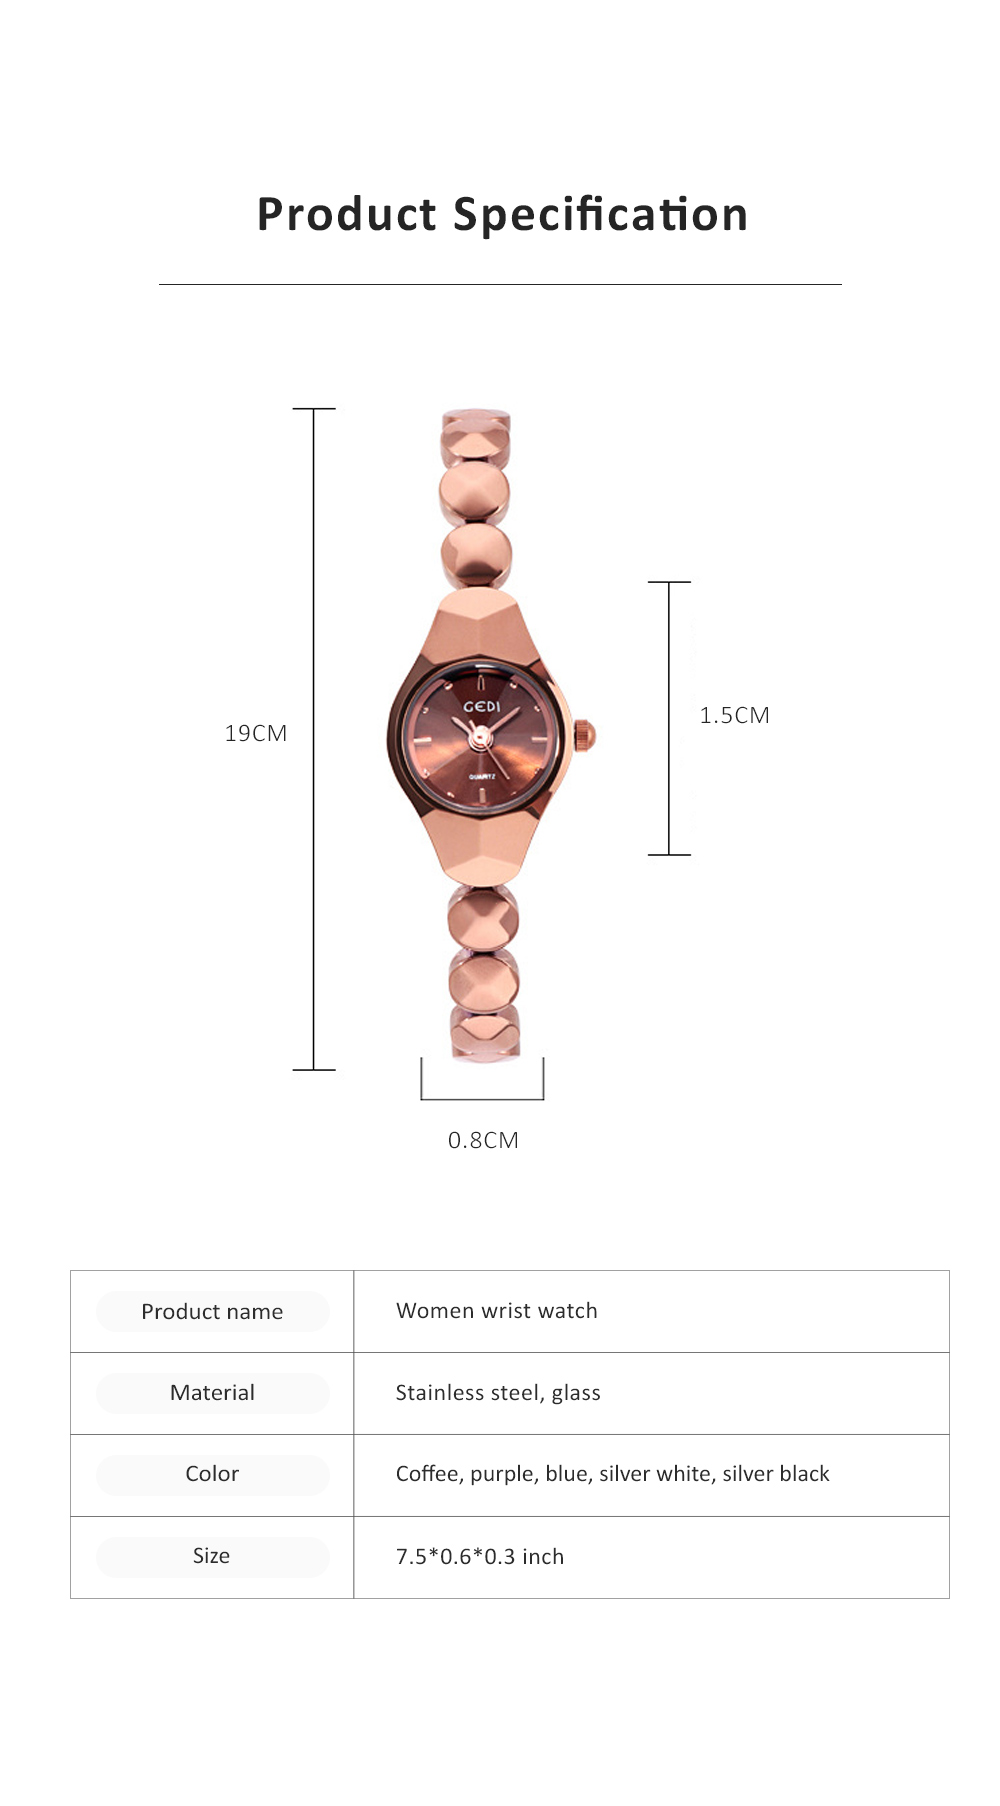 Shiny Hand Watch Bracelet with High Quality Dial Tungsten Steel Fashionable Quartz Wrist Watch for Ladies 6